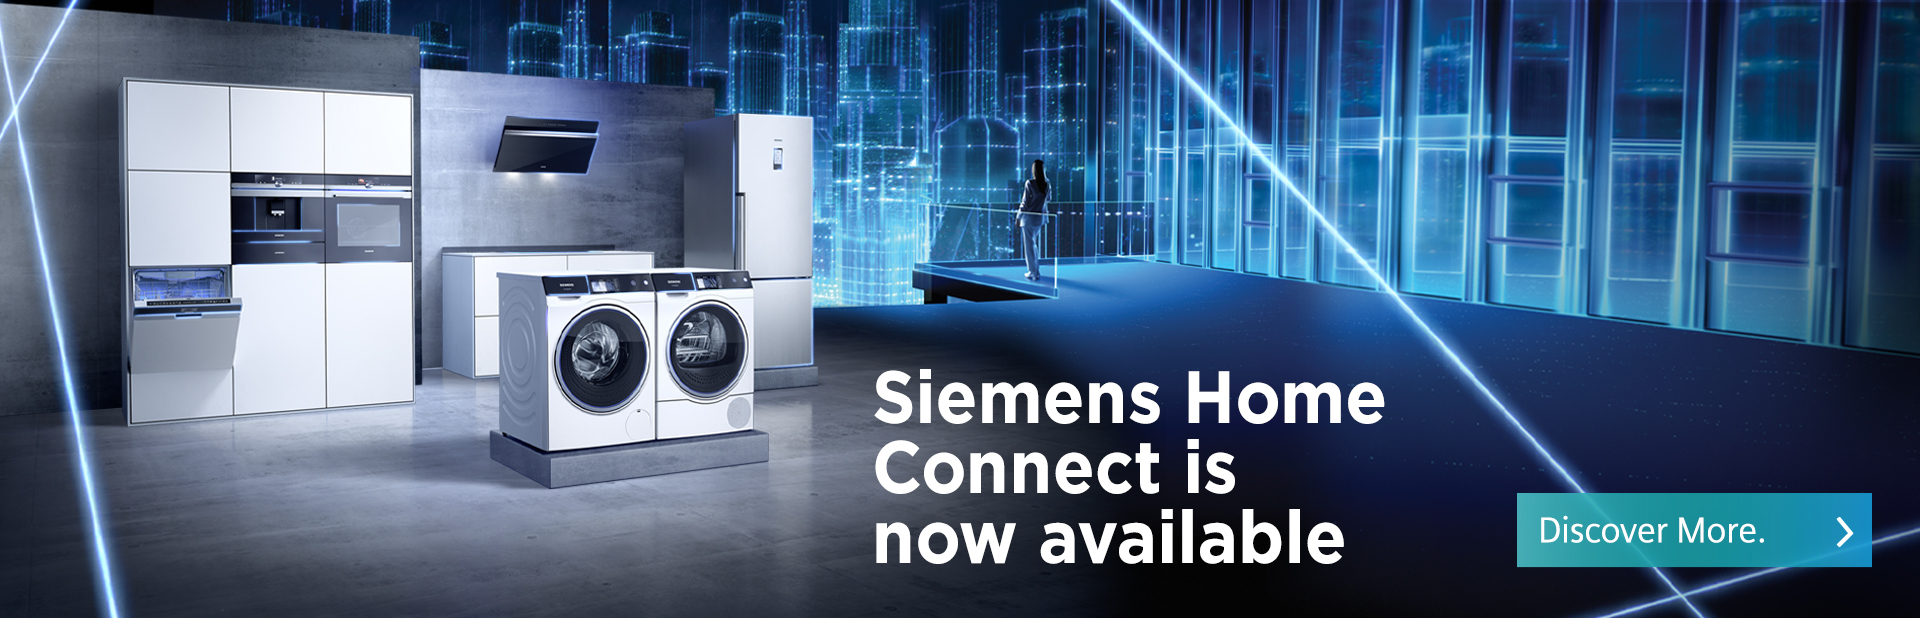 https://www.betterlifeuae.com/brands/siemens?cat=307